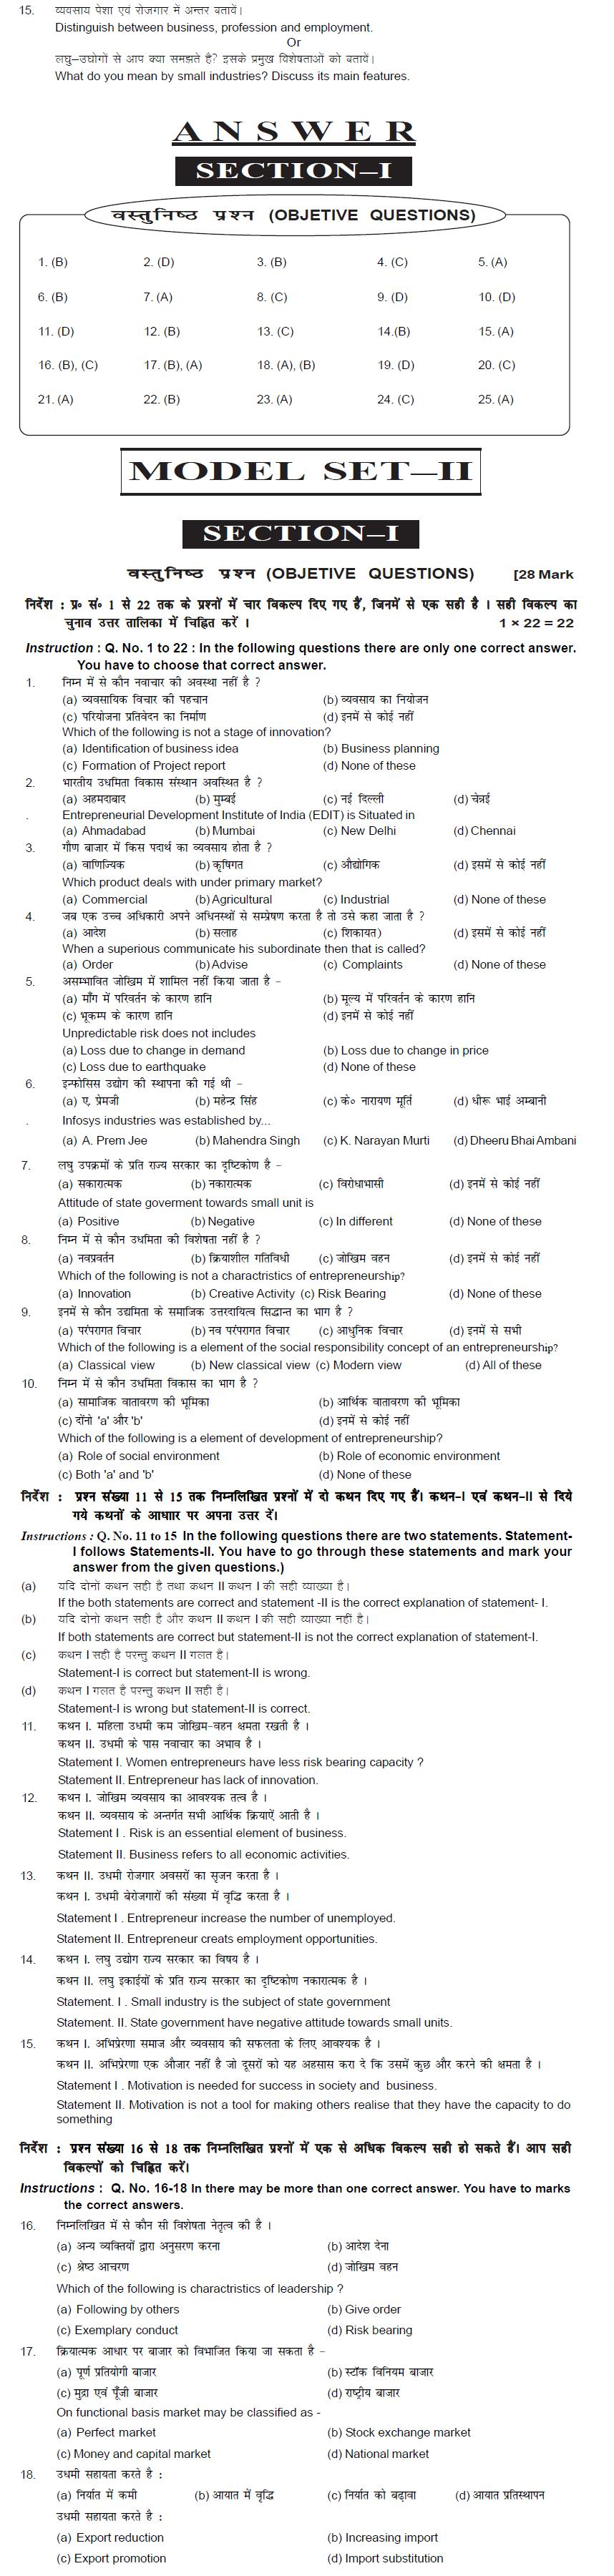 Bihar Board Class XI Commerce Model Question Papers - Enterprenureship